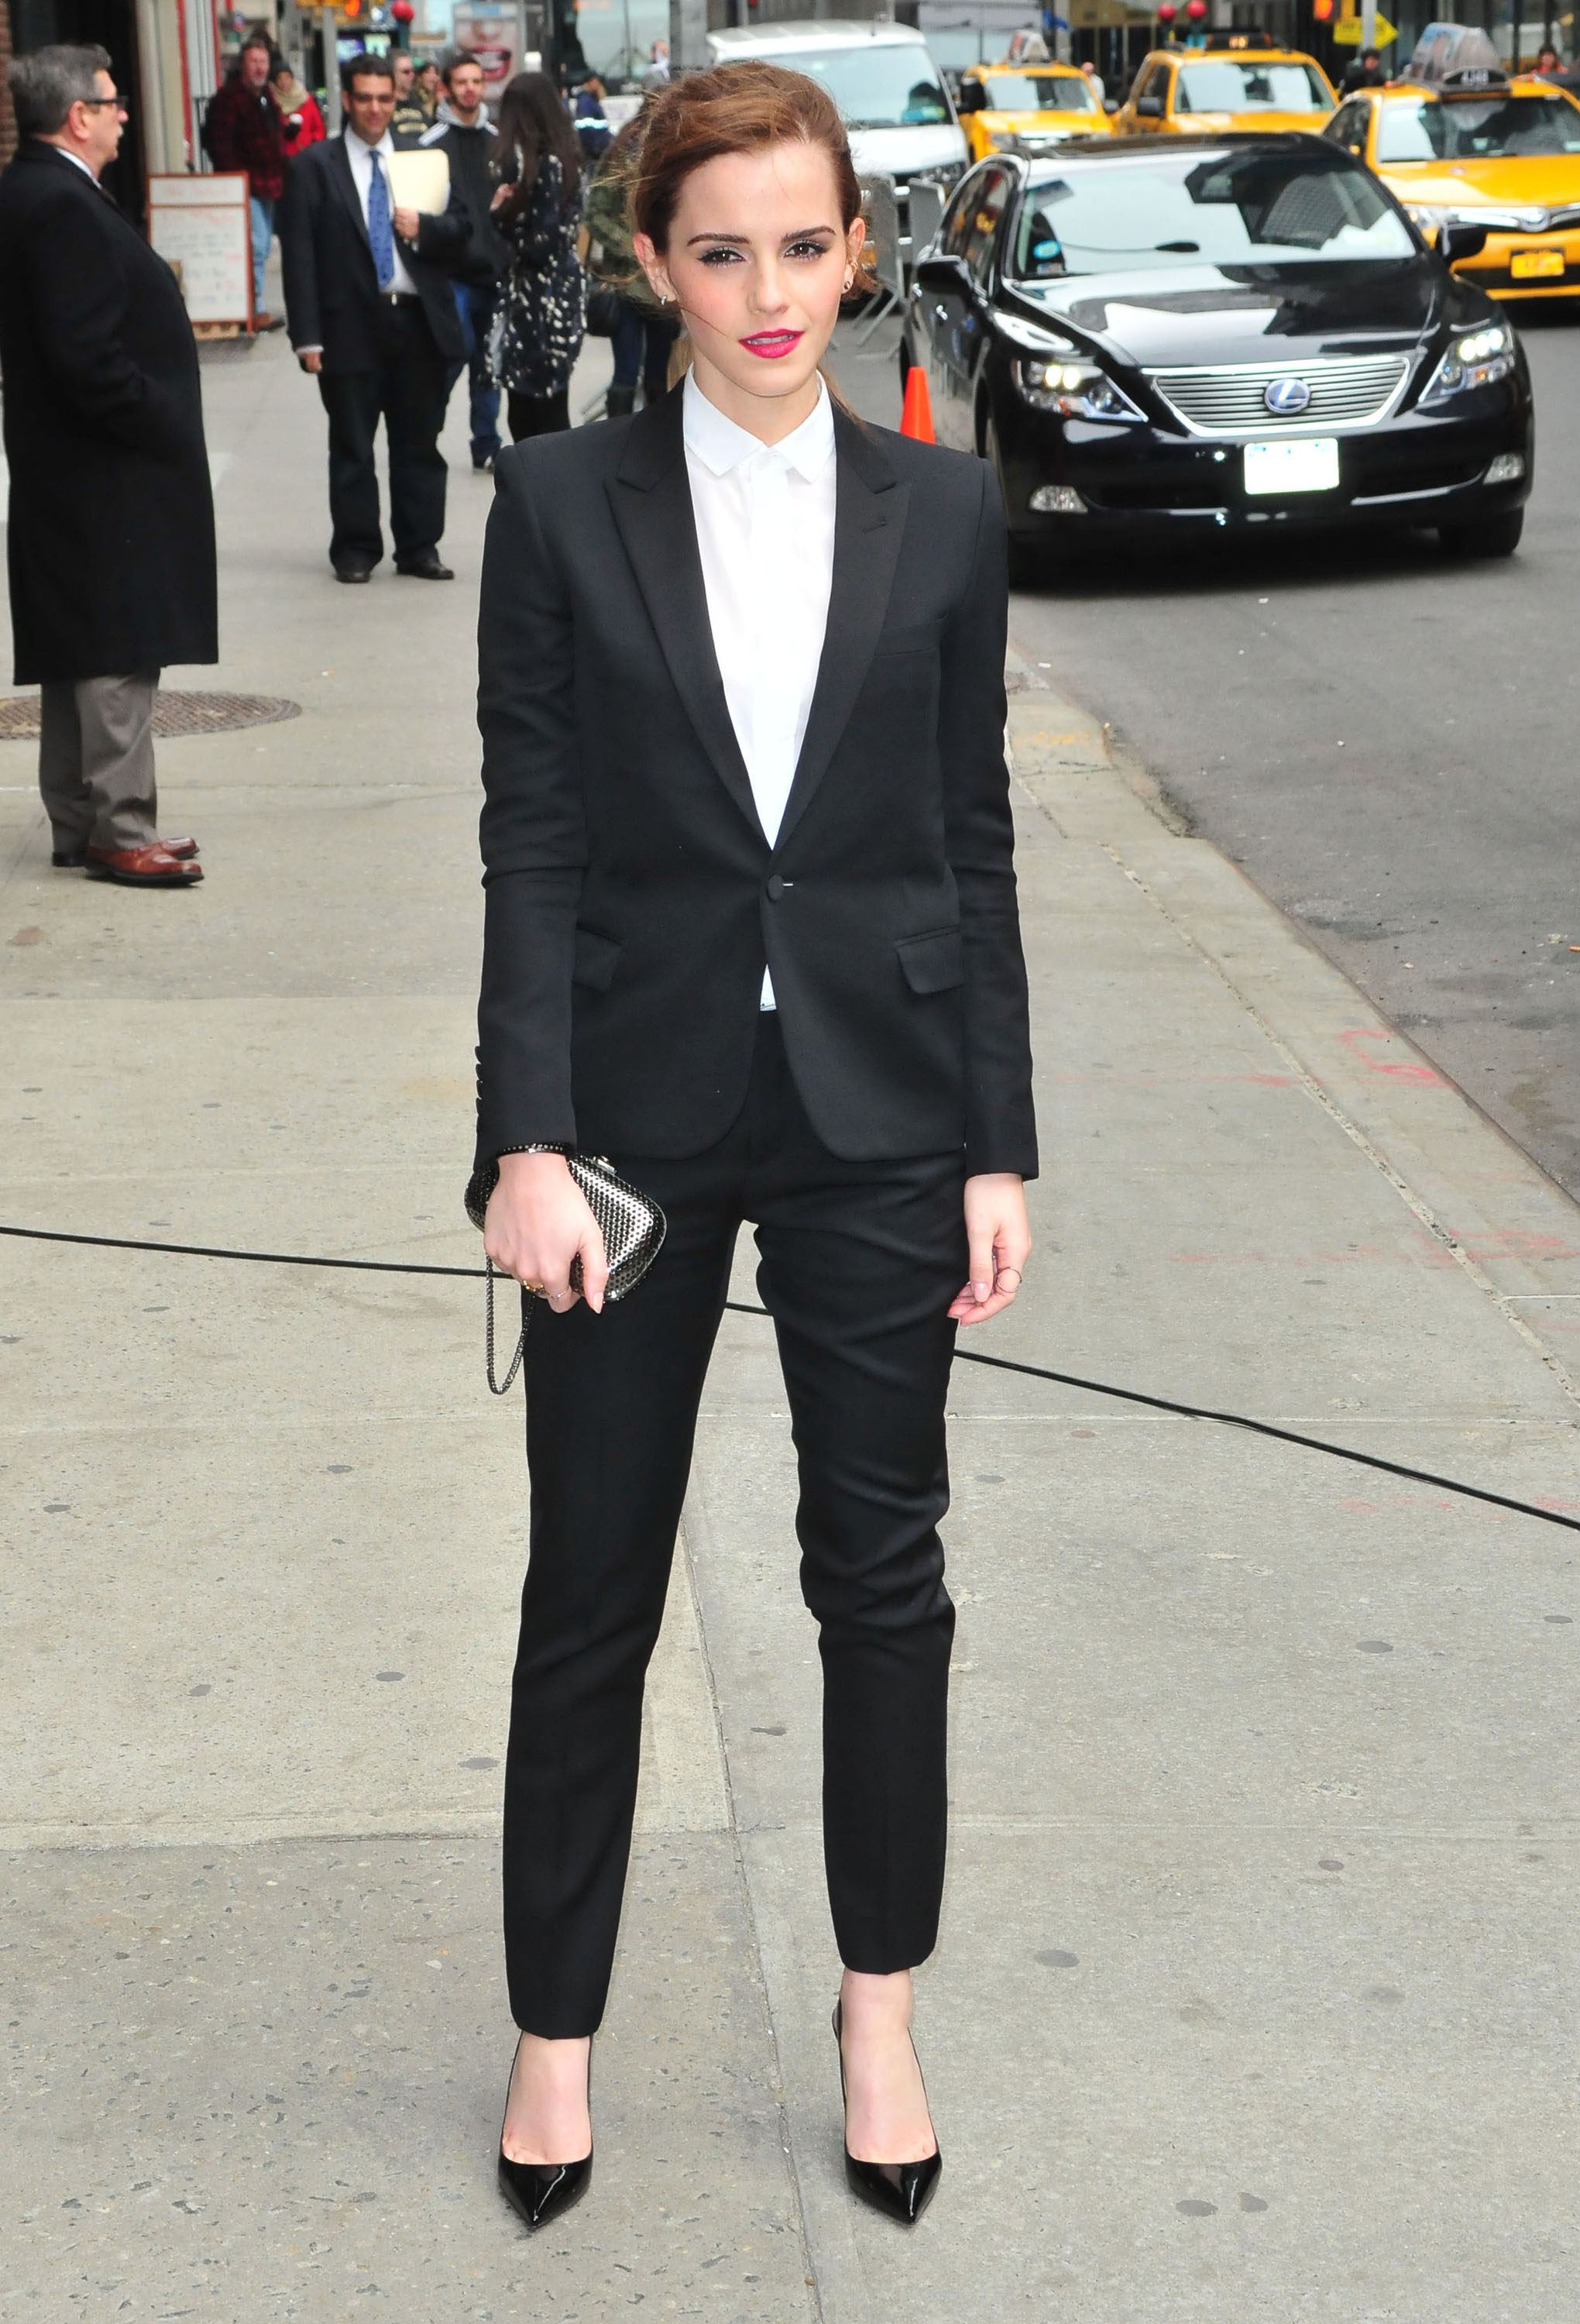 Emma Watson Rocks A Suit For Late Show With David